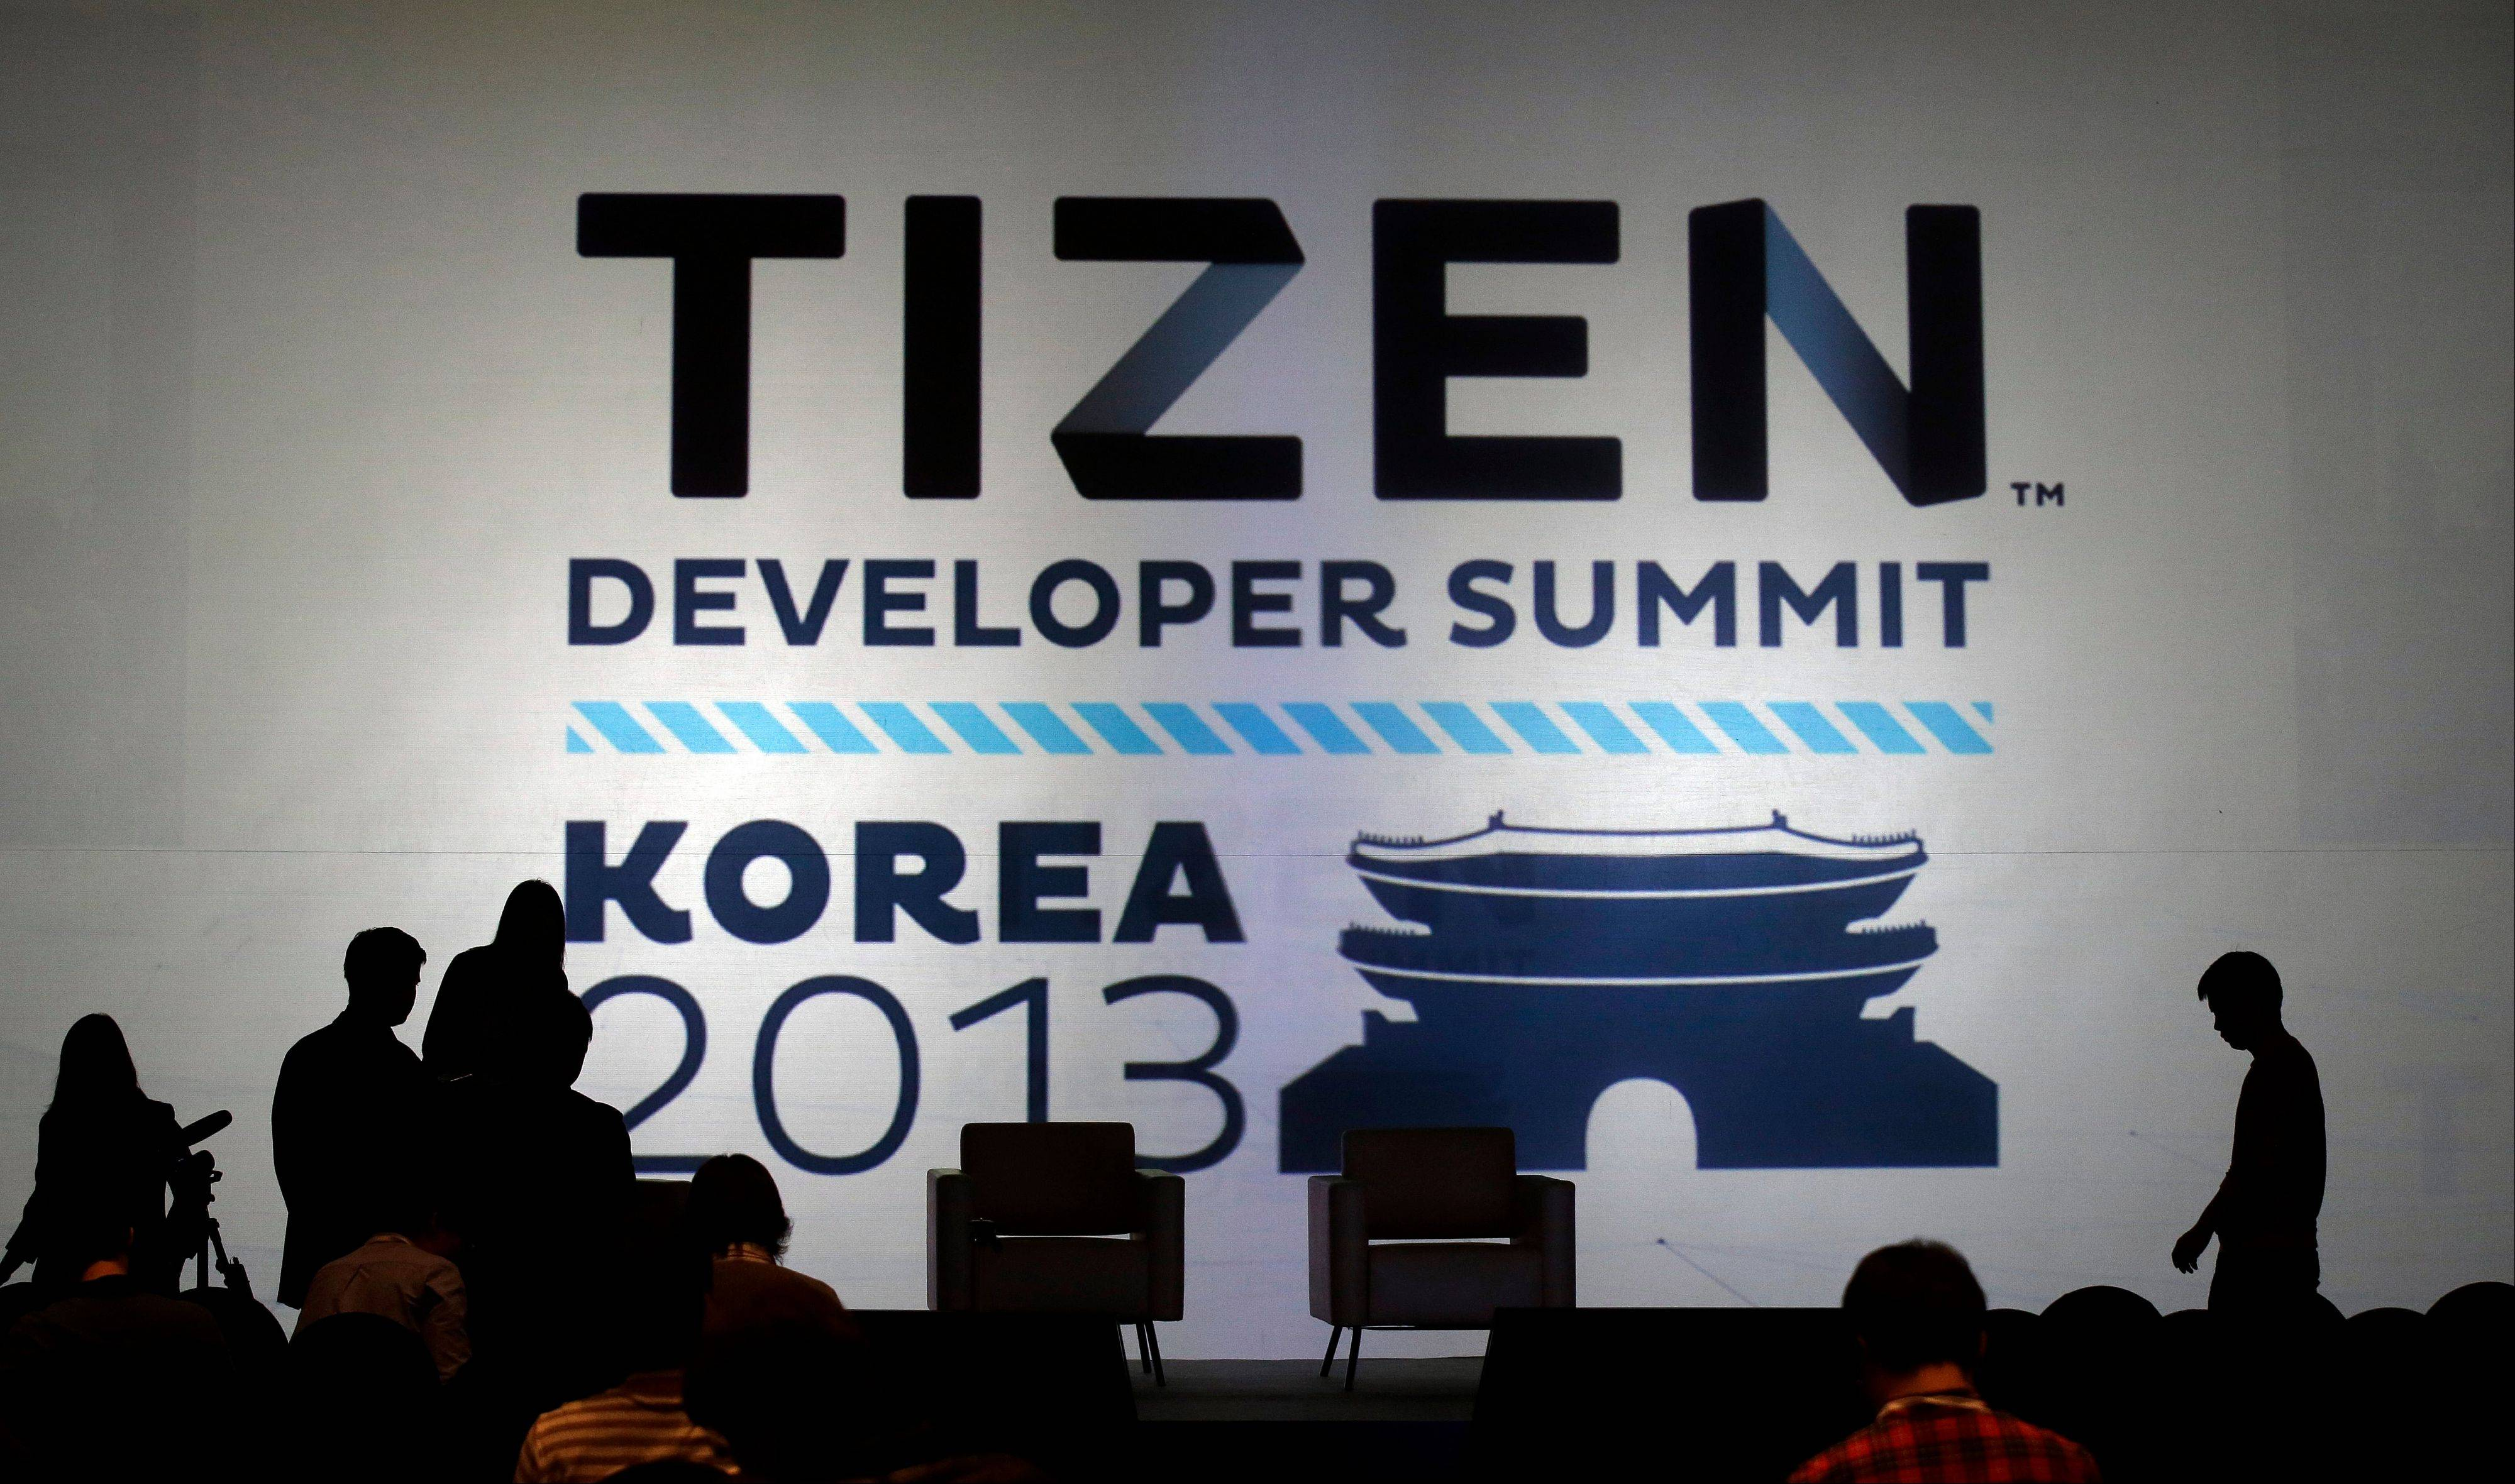 Participants are seen near the logo of Tizen Monday during the Tizen Developer Summit 2013 in Seoul, South Korea. Samsung is in a quiet push to make its Tizen operating system a part of the technology lexicon as familiar as Google�s Android or Apple�s iOS. Its ambition doesn�t stop there. Samsung sees the software in your car, fridge and television too. The first developer conference in Asia for Tizen wrapped up Tuesday after a two-day run, bringing together app developers and Tizen backers from Samsung, Intel and mobile operators.